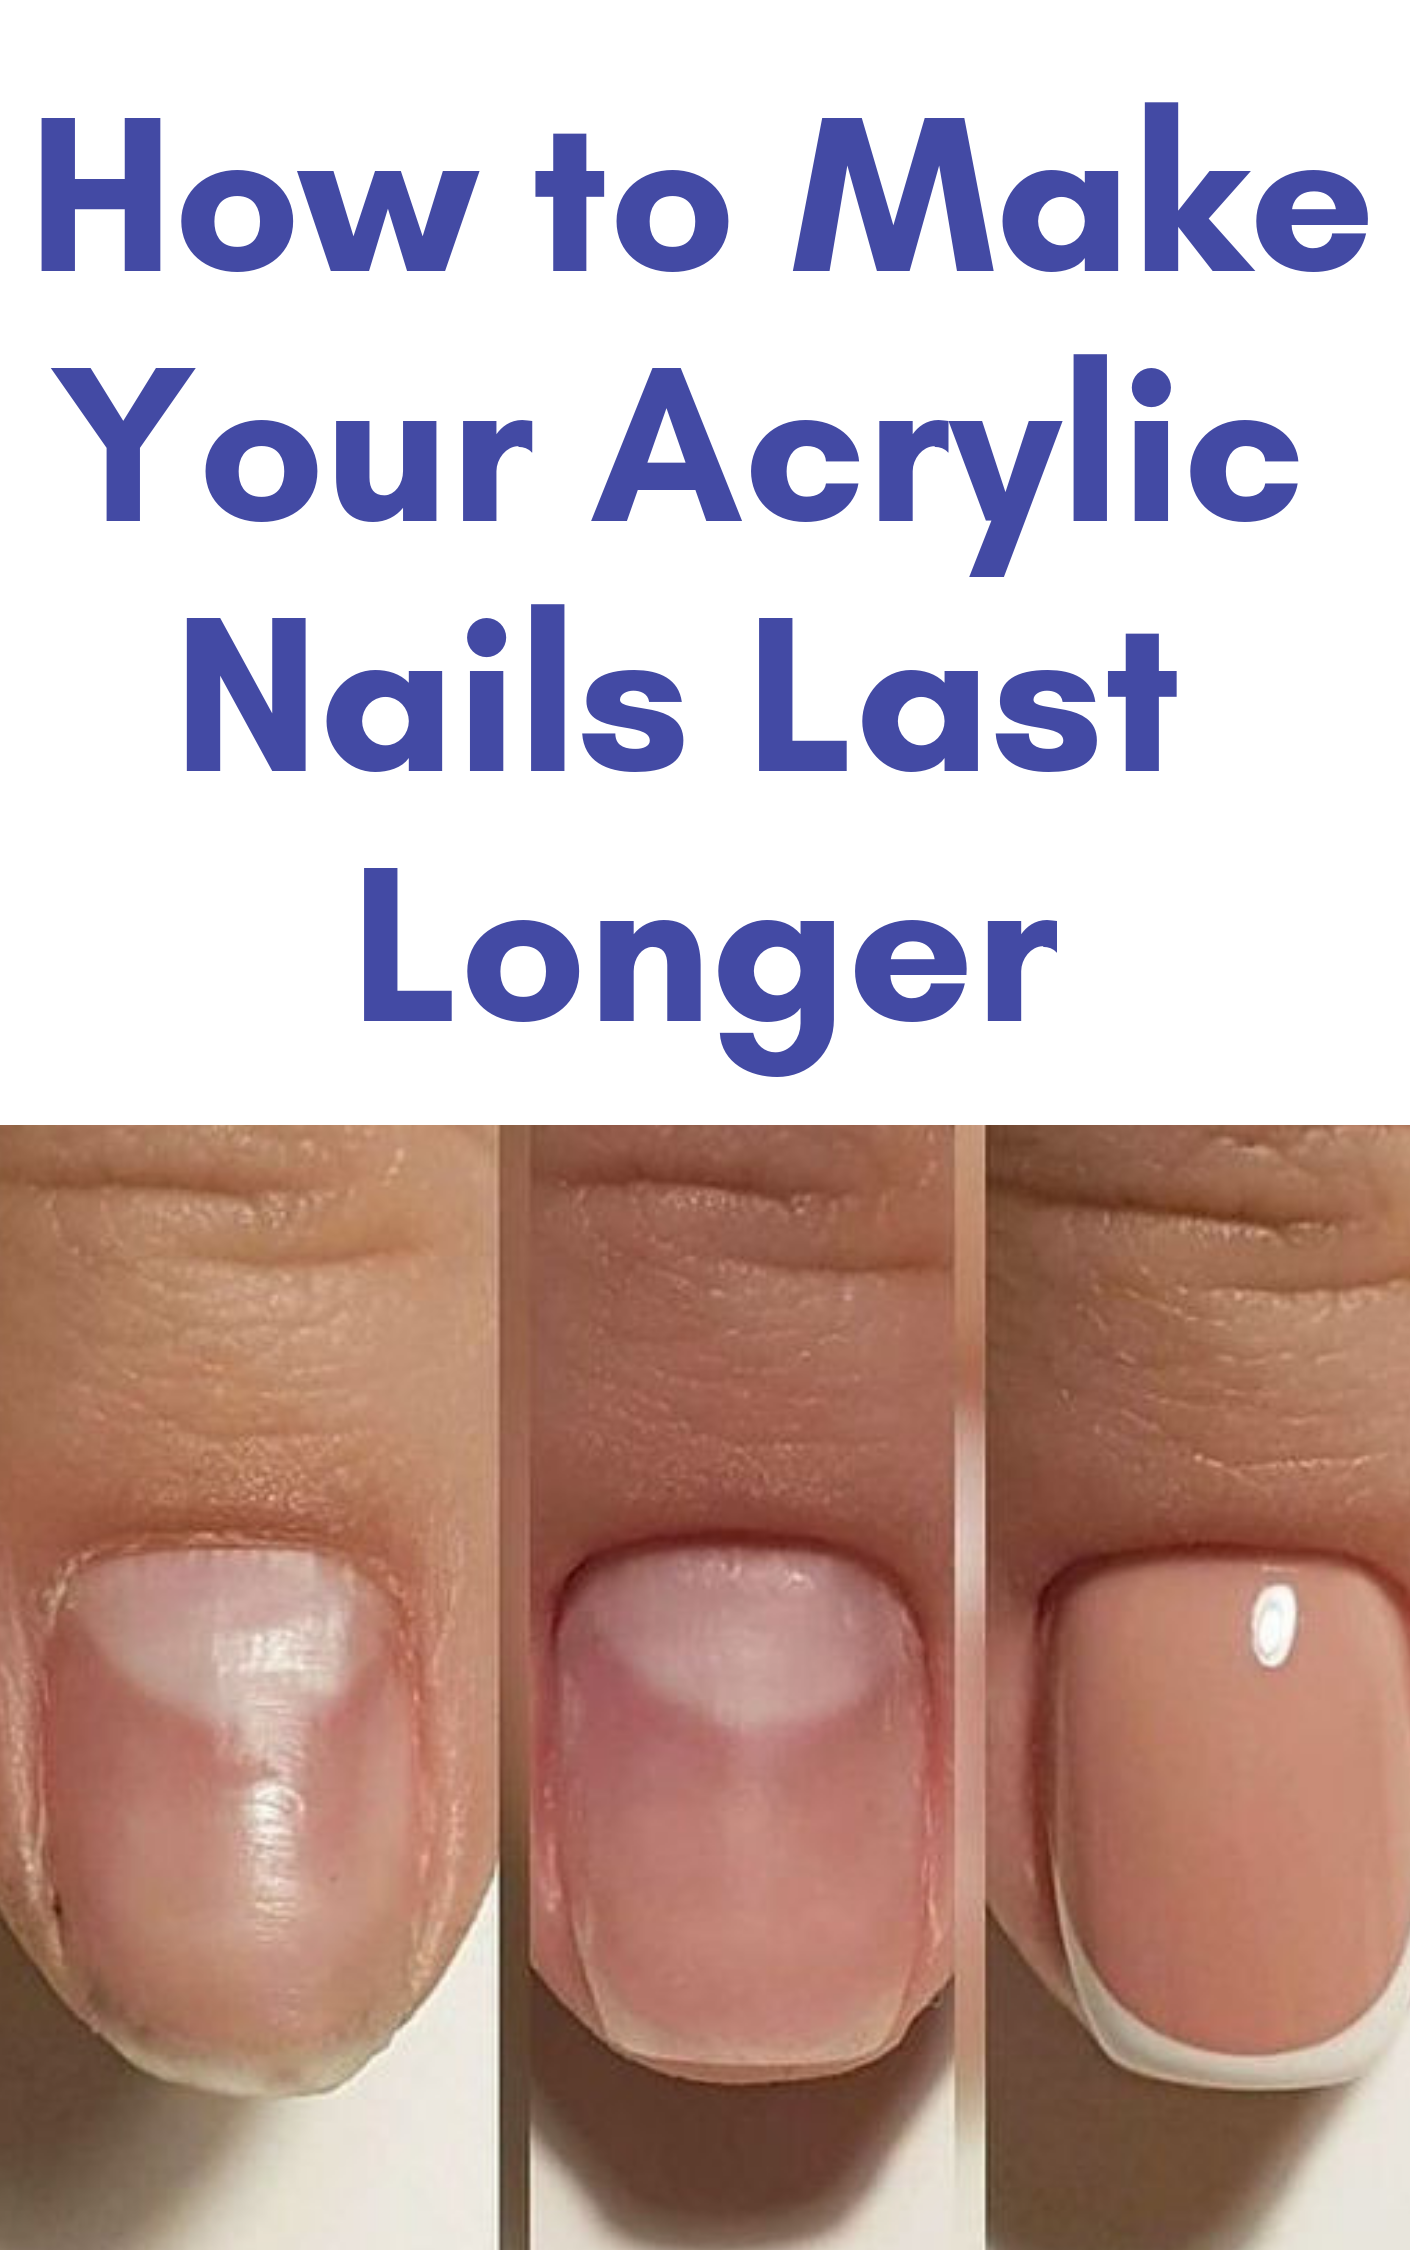 How Long Do Acrylic Nails Last And 14 Tips To Make Them Last Longer Nails Acrylic Nails Types Of Nails